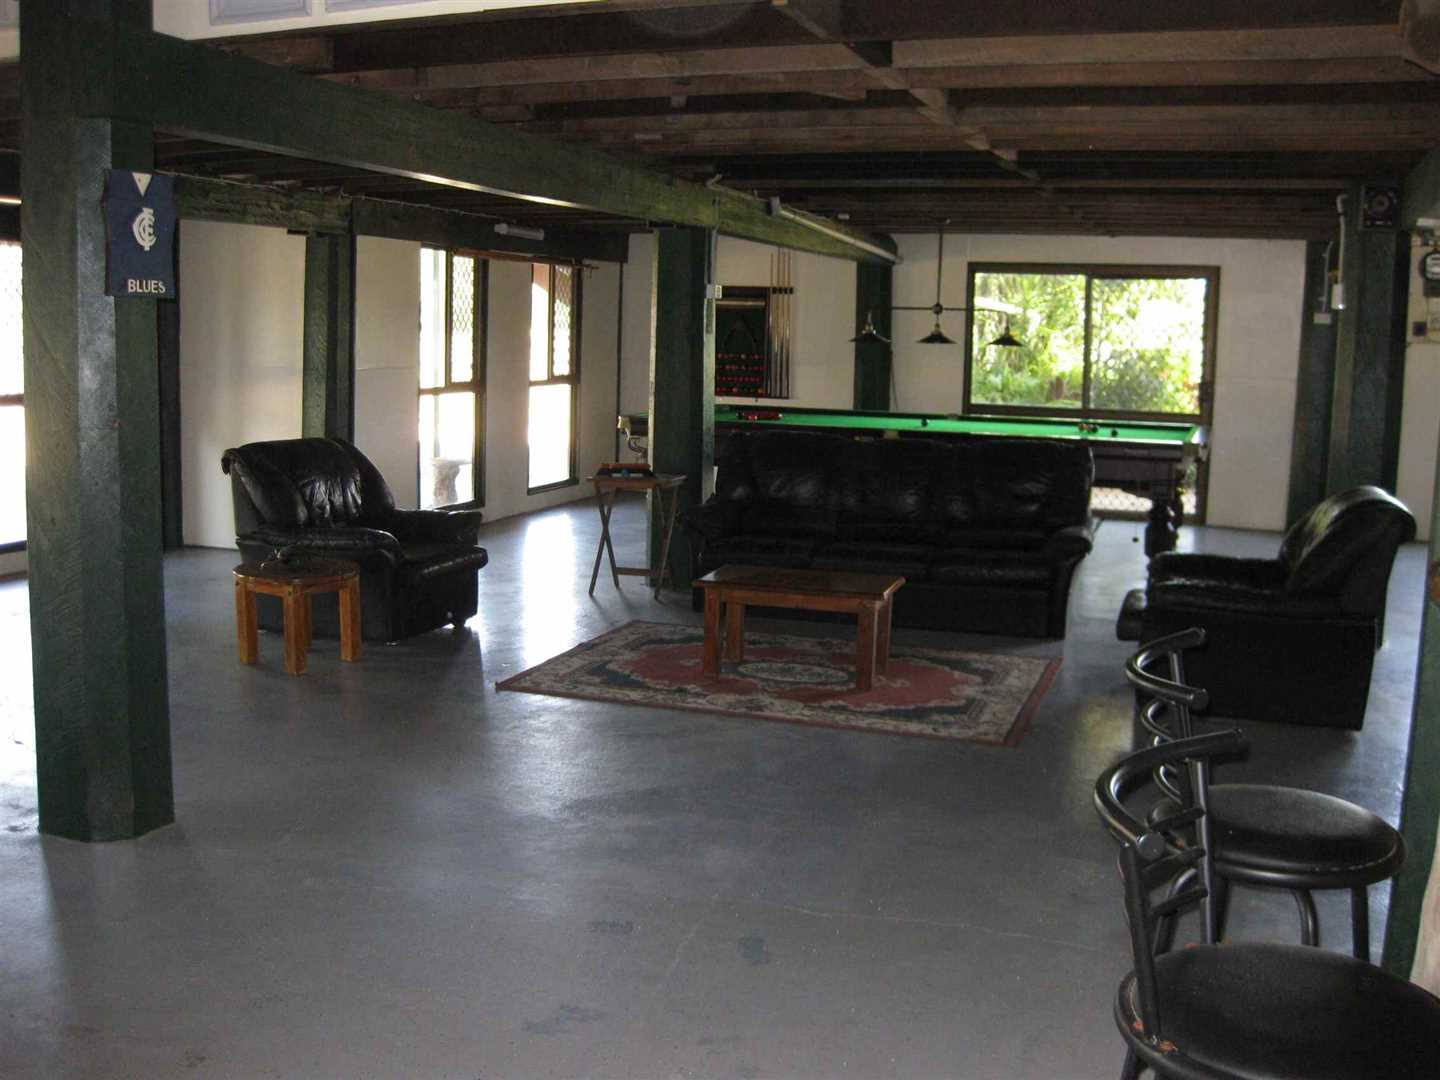 Inside view of part of home showing part of ground floor entertainment room, photo 1